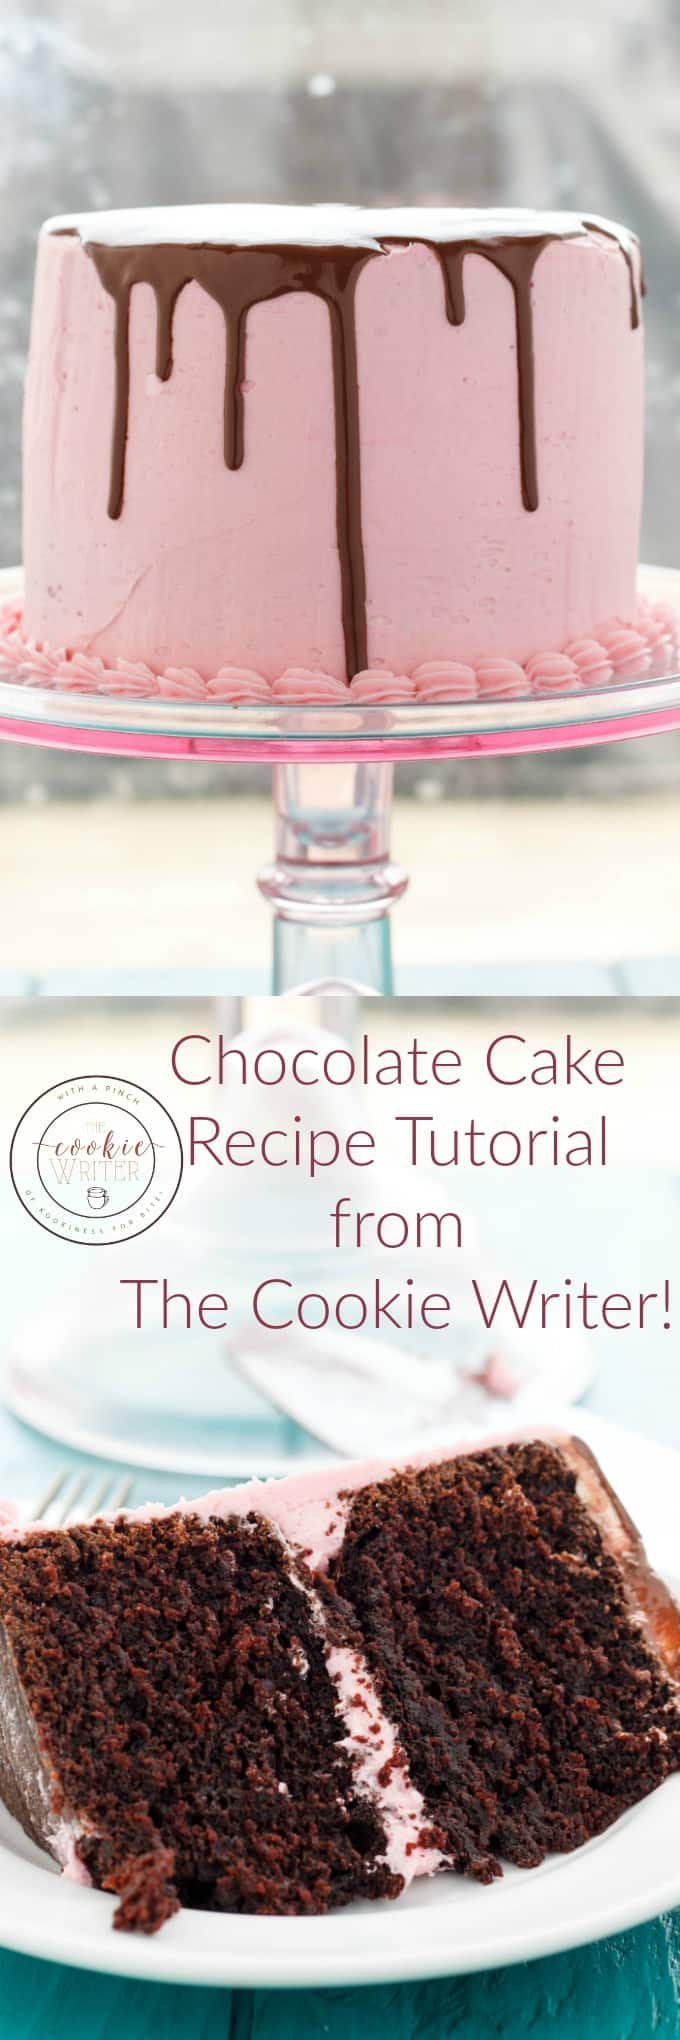 Chocolate Cake Recipe Tutorial from The Cookie Writer!